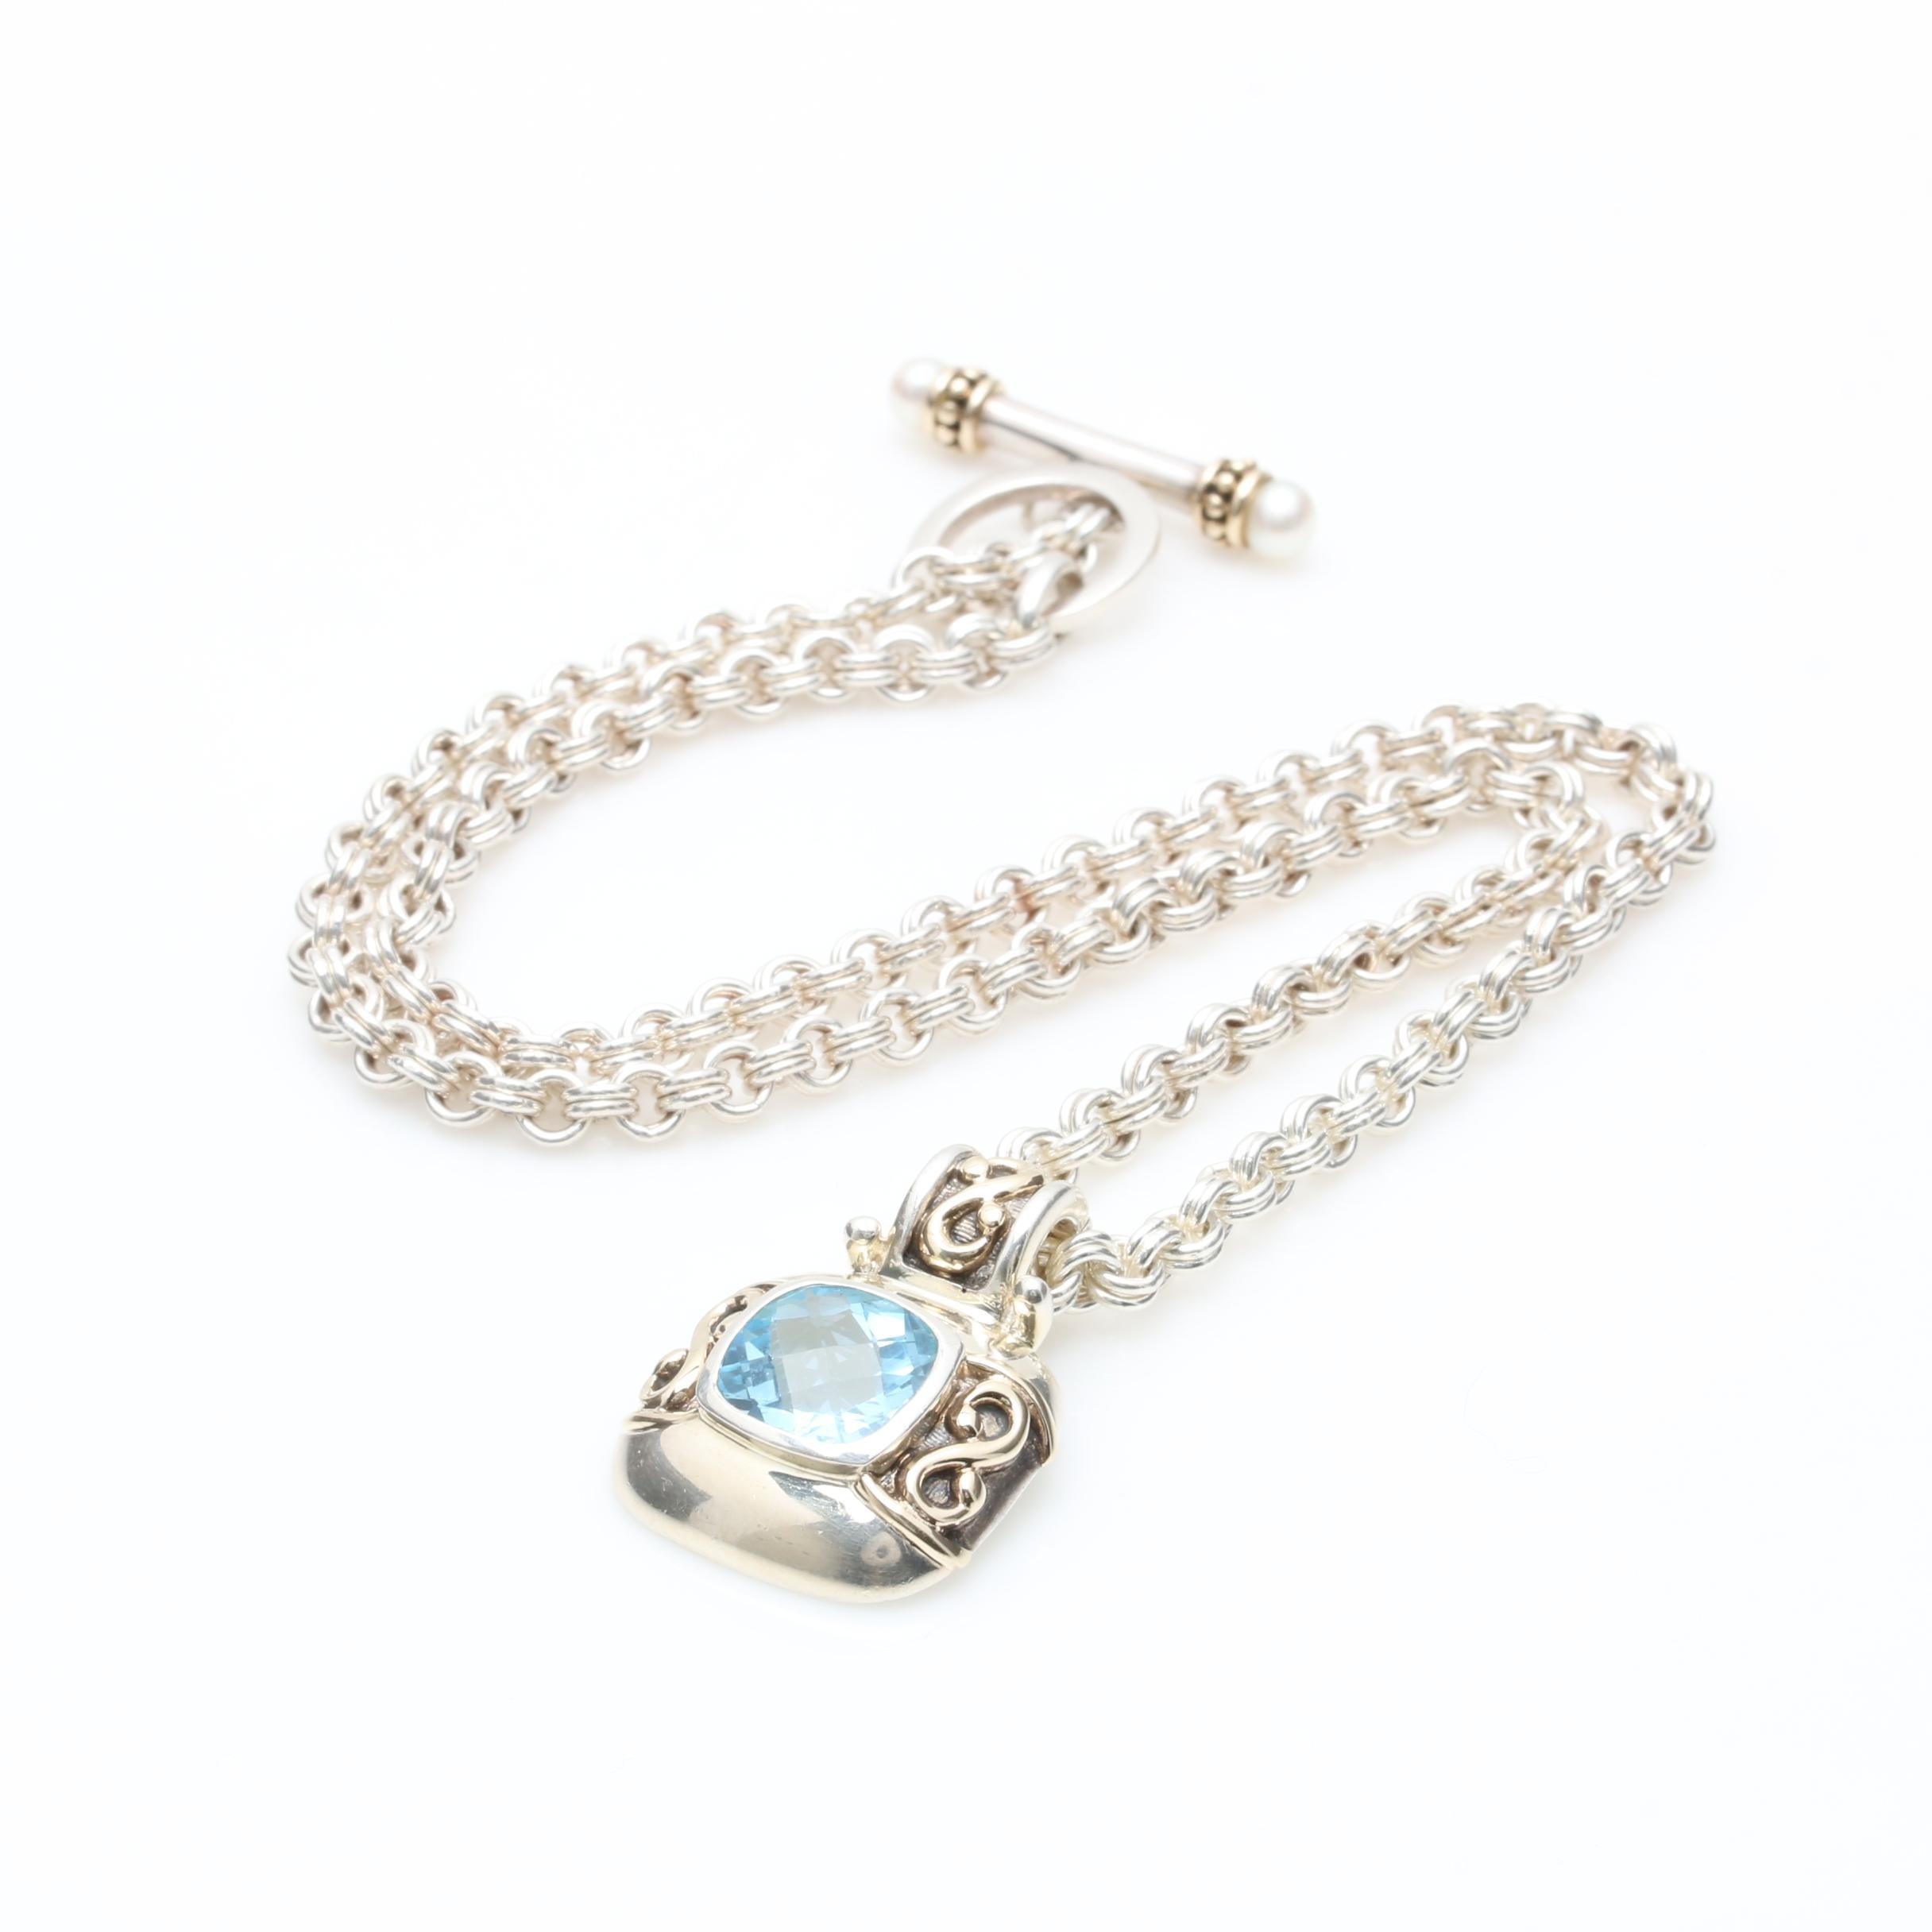 Sterling Silver Topaz and Pearl Pendant Necklace with 14K Yellow Gold Accents